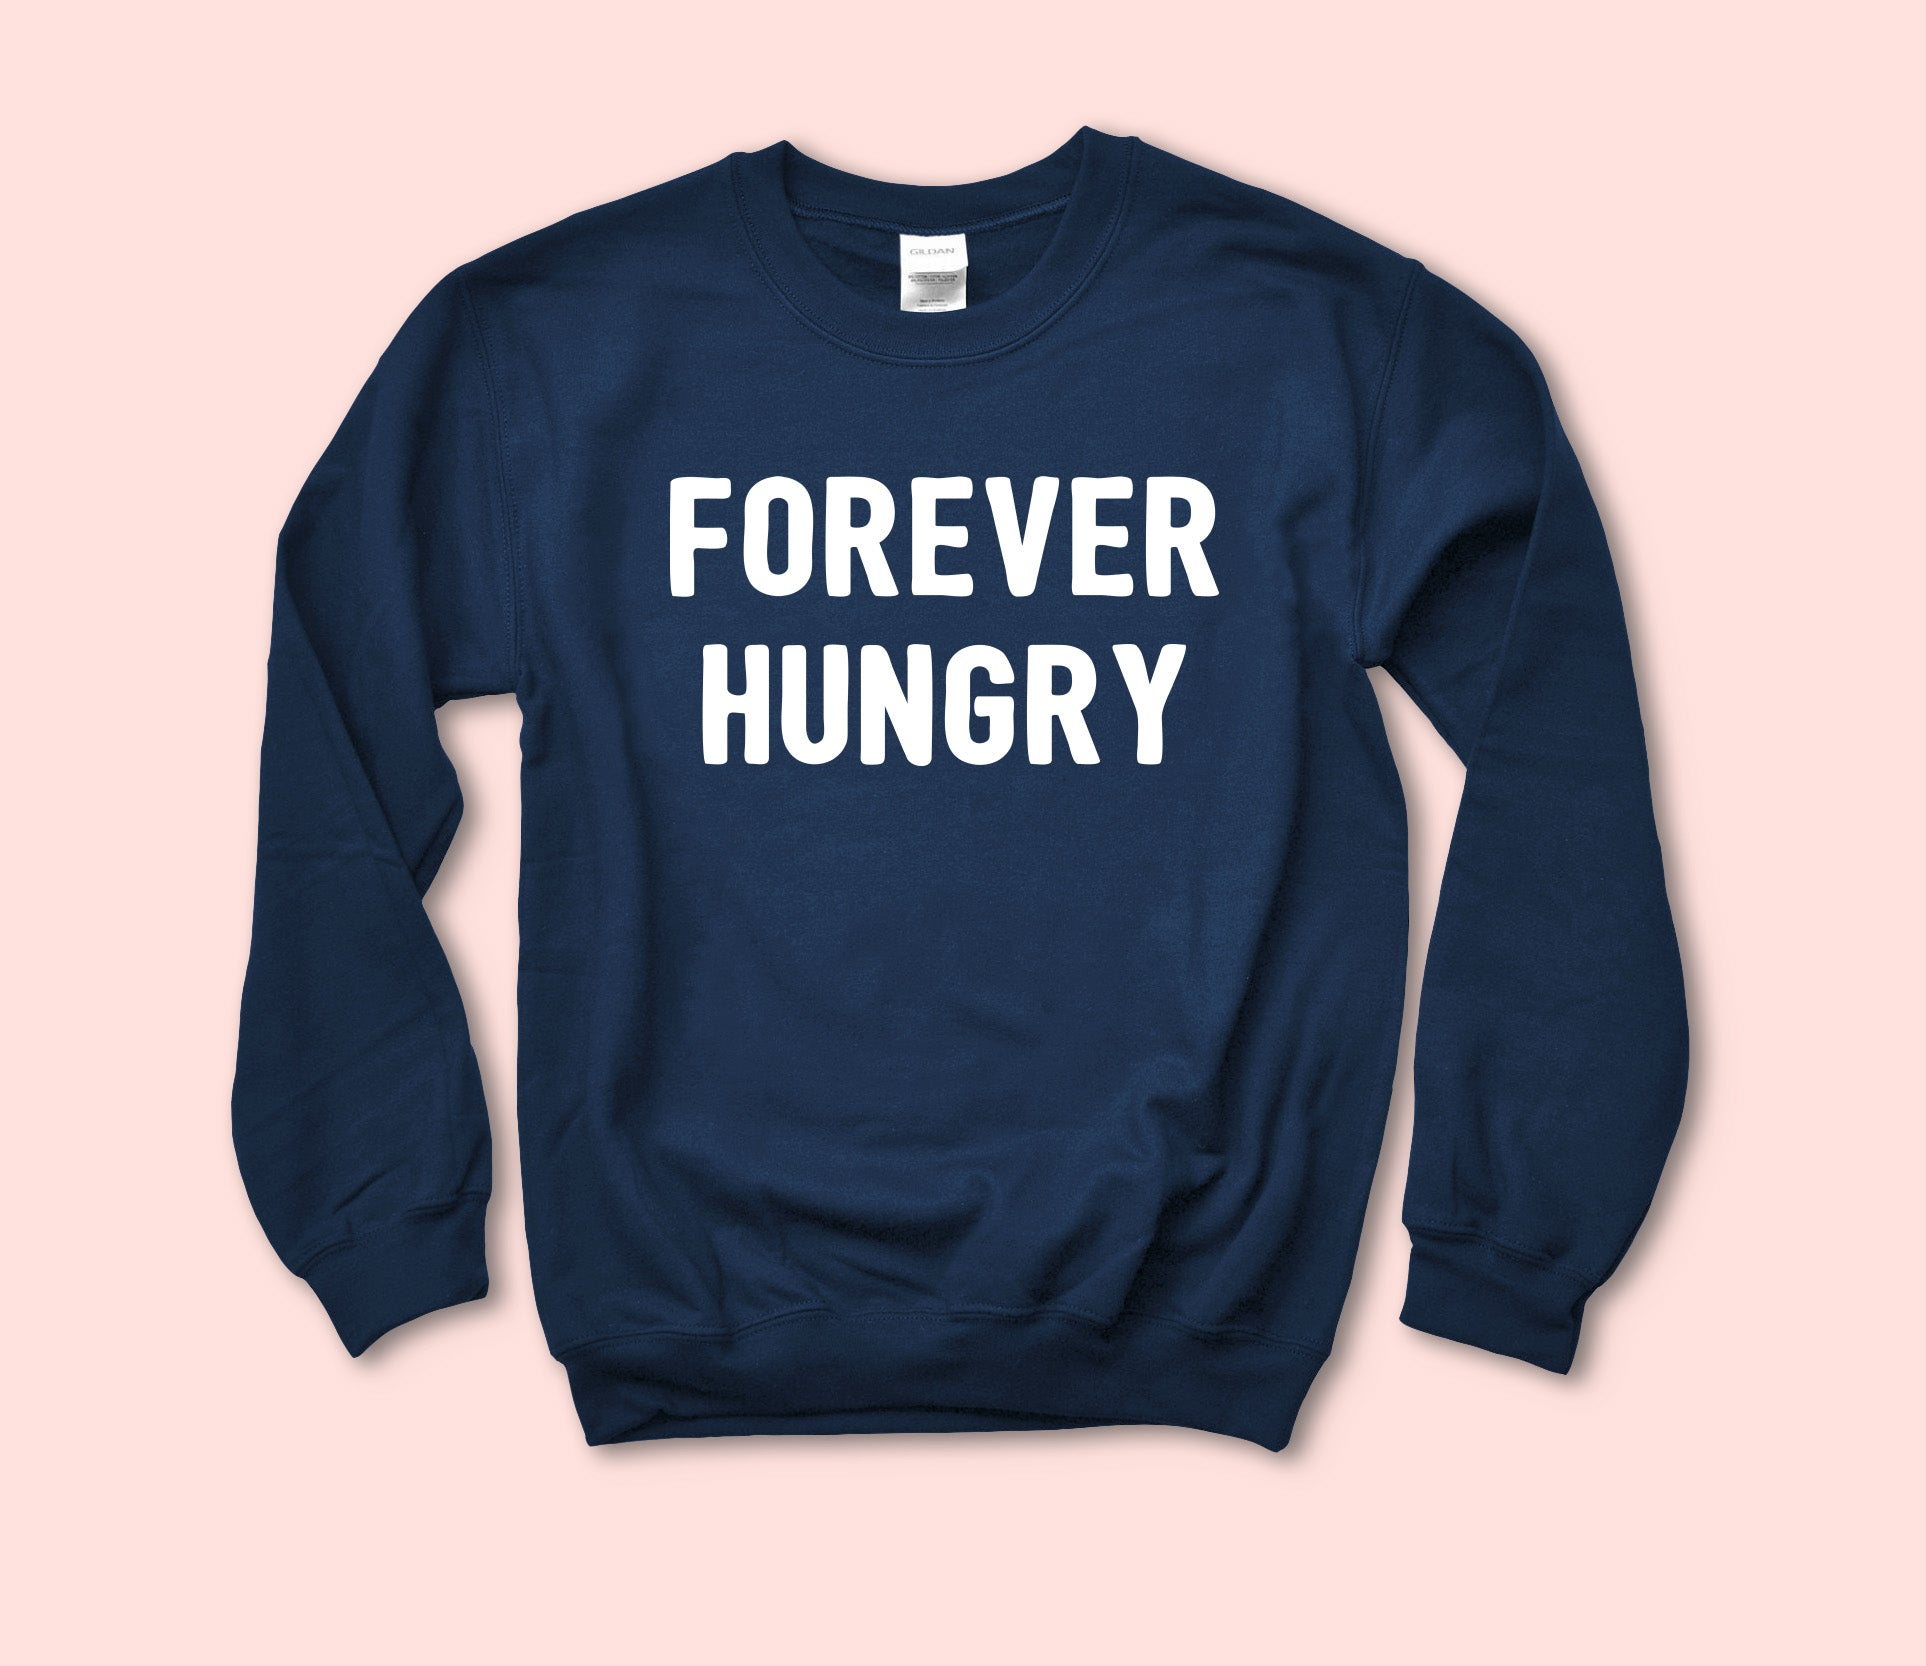 Forever Hungry Sweatshirt